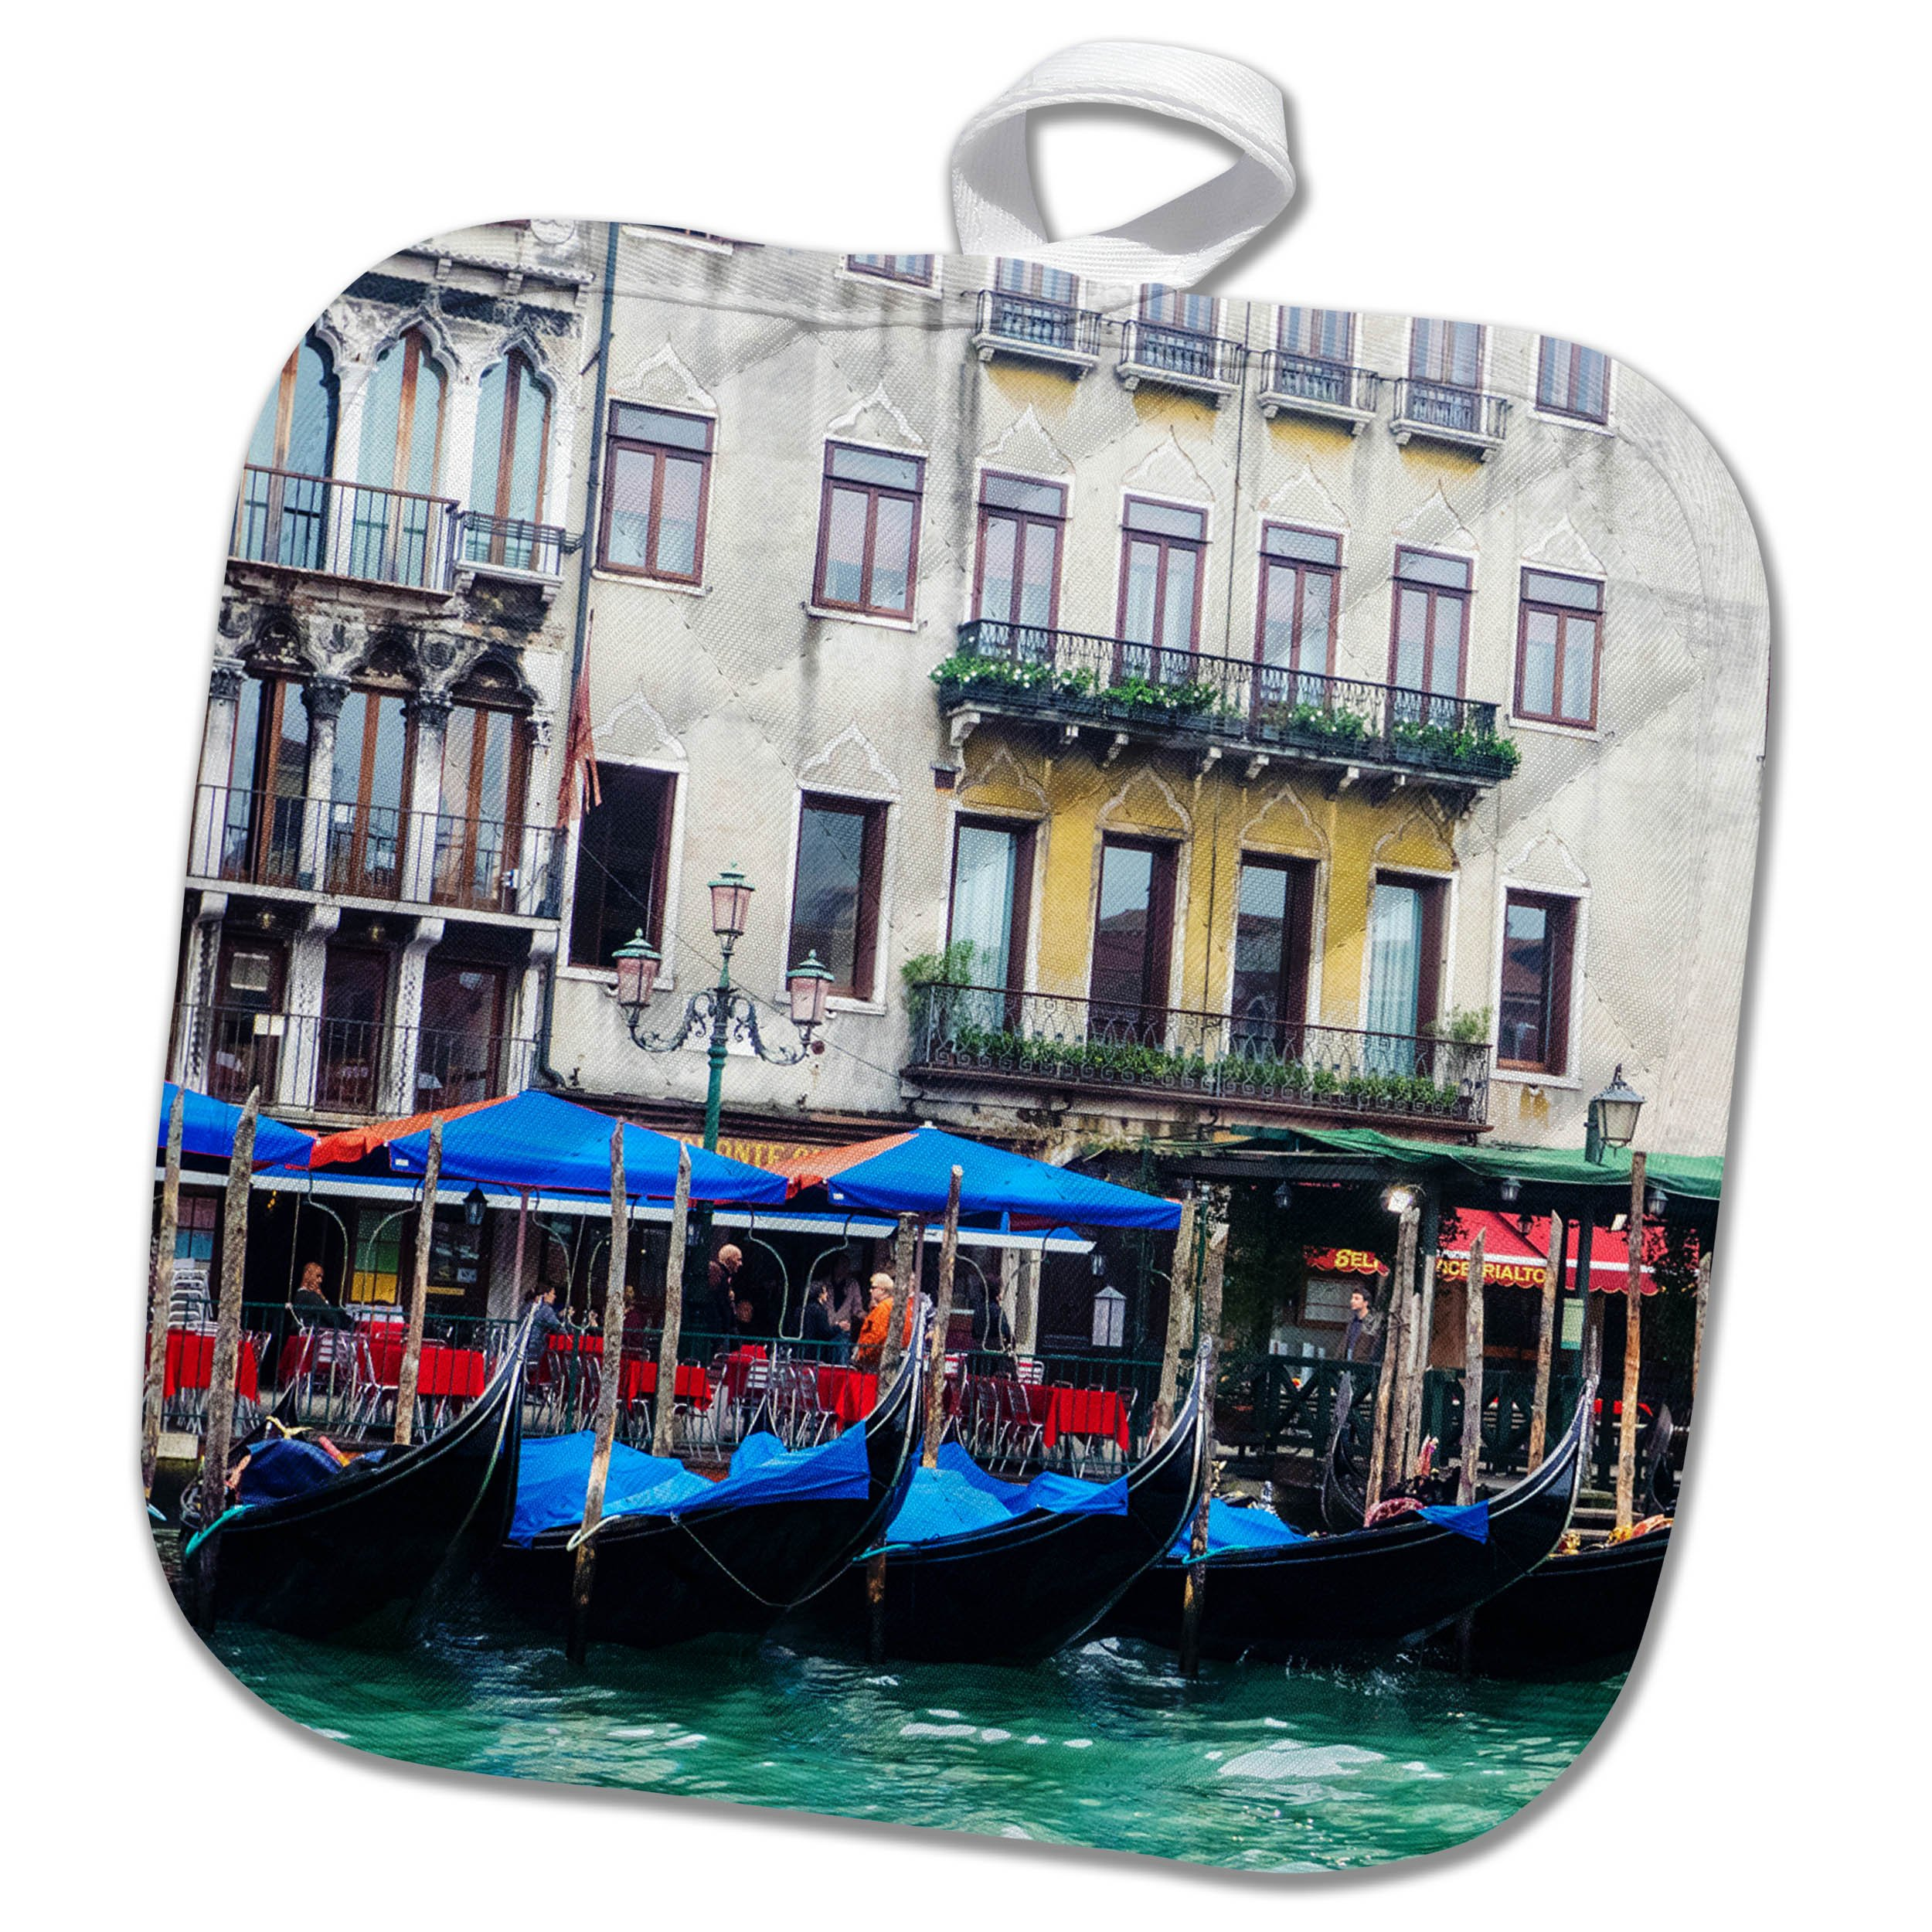 3dRose Danita Delimont - Cities - Italy, Venice, Buildings along the Grand Canal with Gondolas parked - 8x8 Potholder (phl_277664_1)